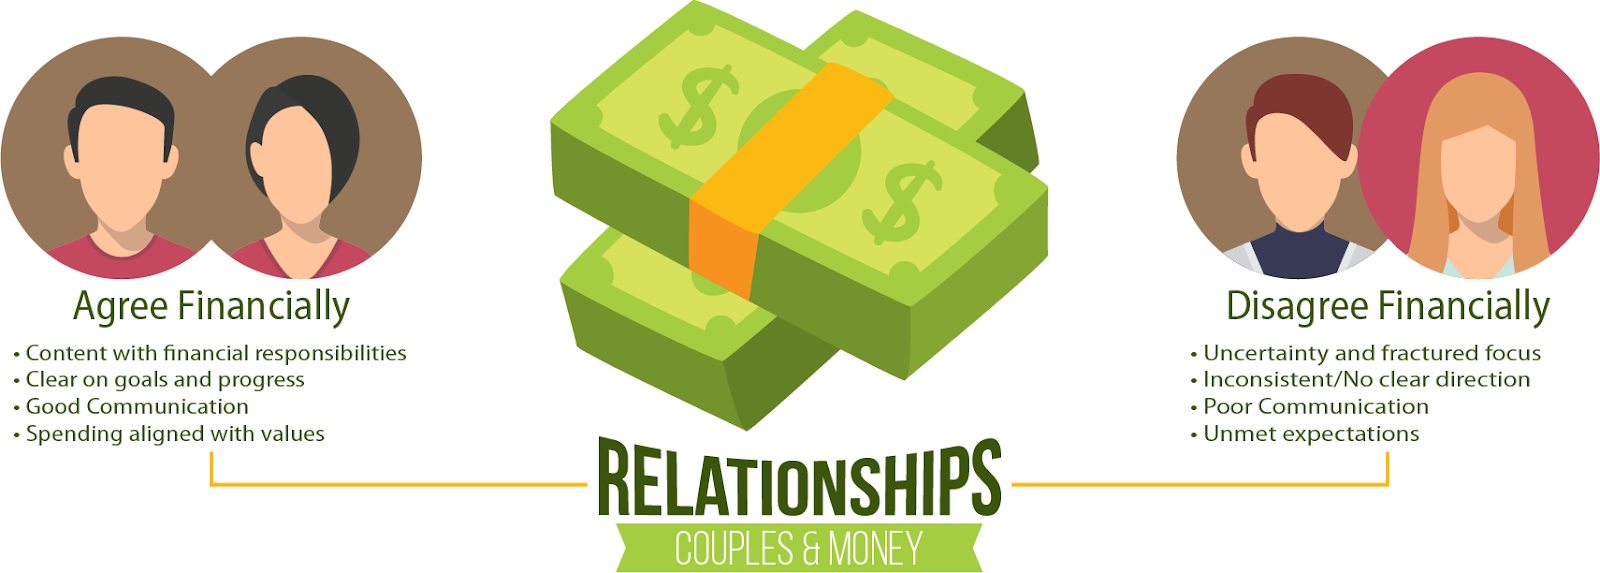 Relationships - Couples and Money.png